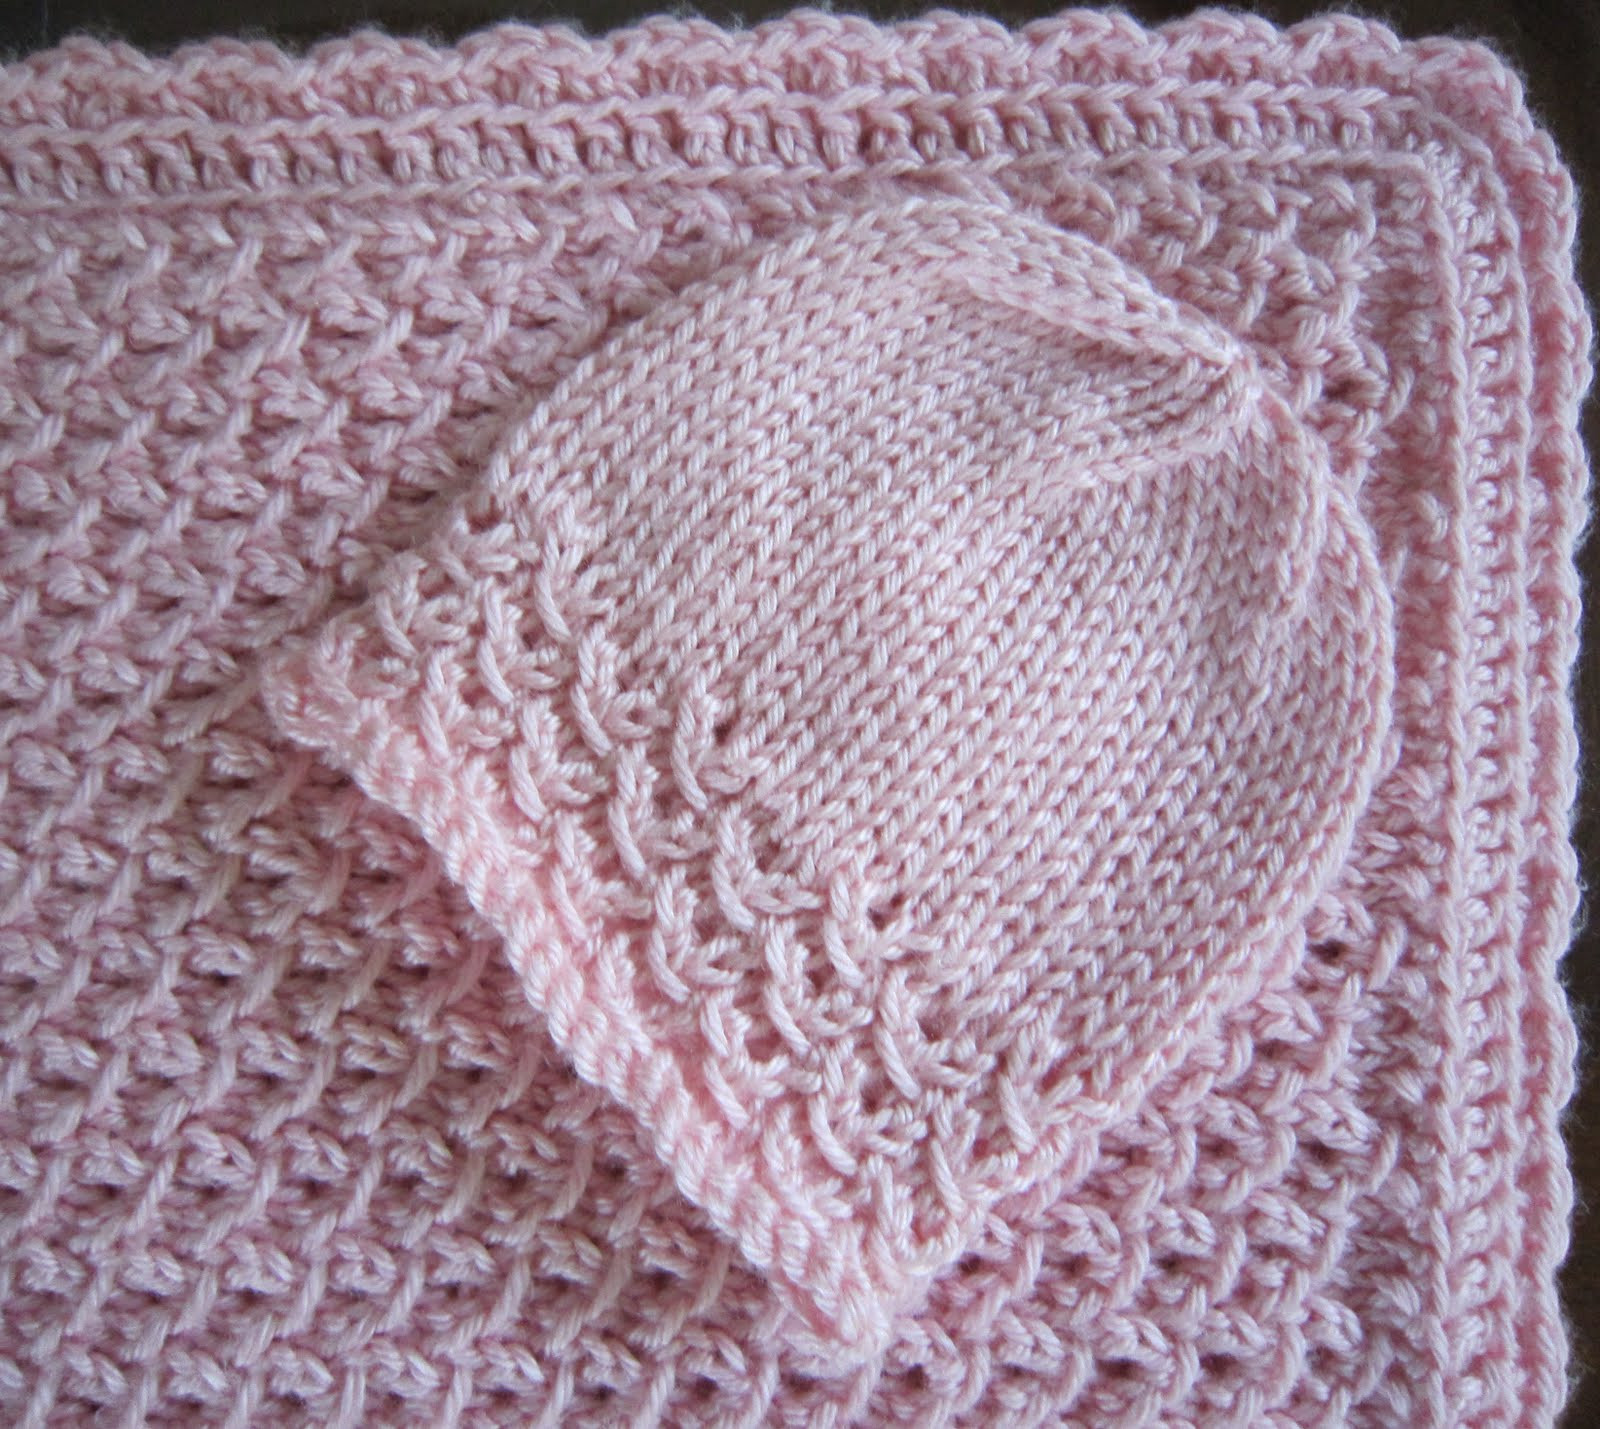 Elegant Free Baby Blanket Patterns to Crochet Free Crochet Patterns for Newborns Of Unique 40 Photos Free Crochet Patterns for Newborns